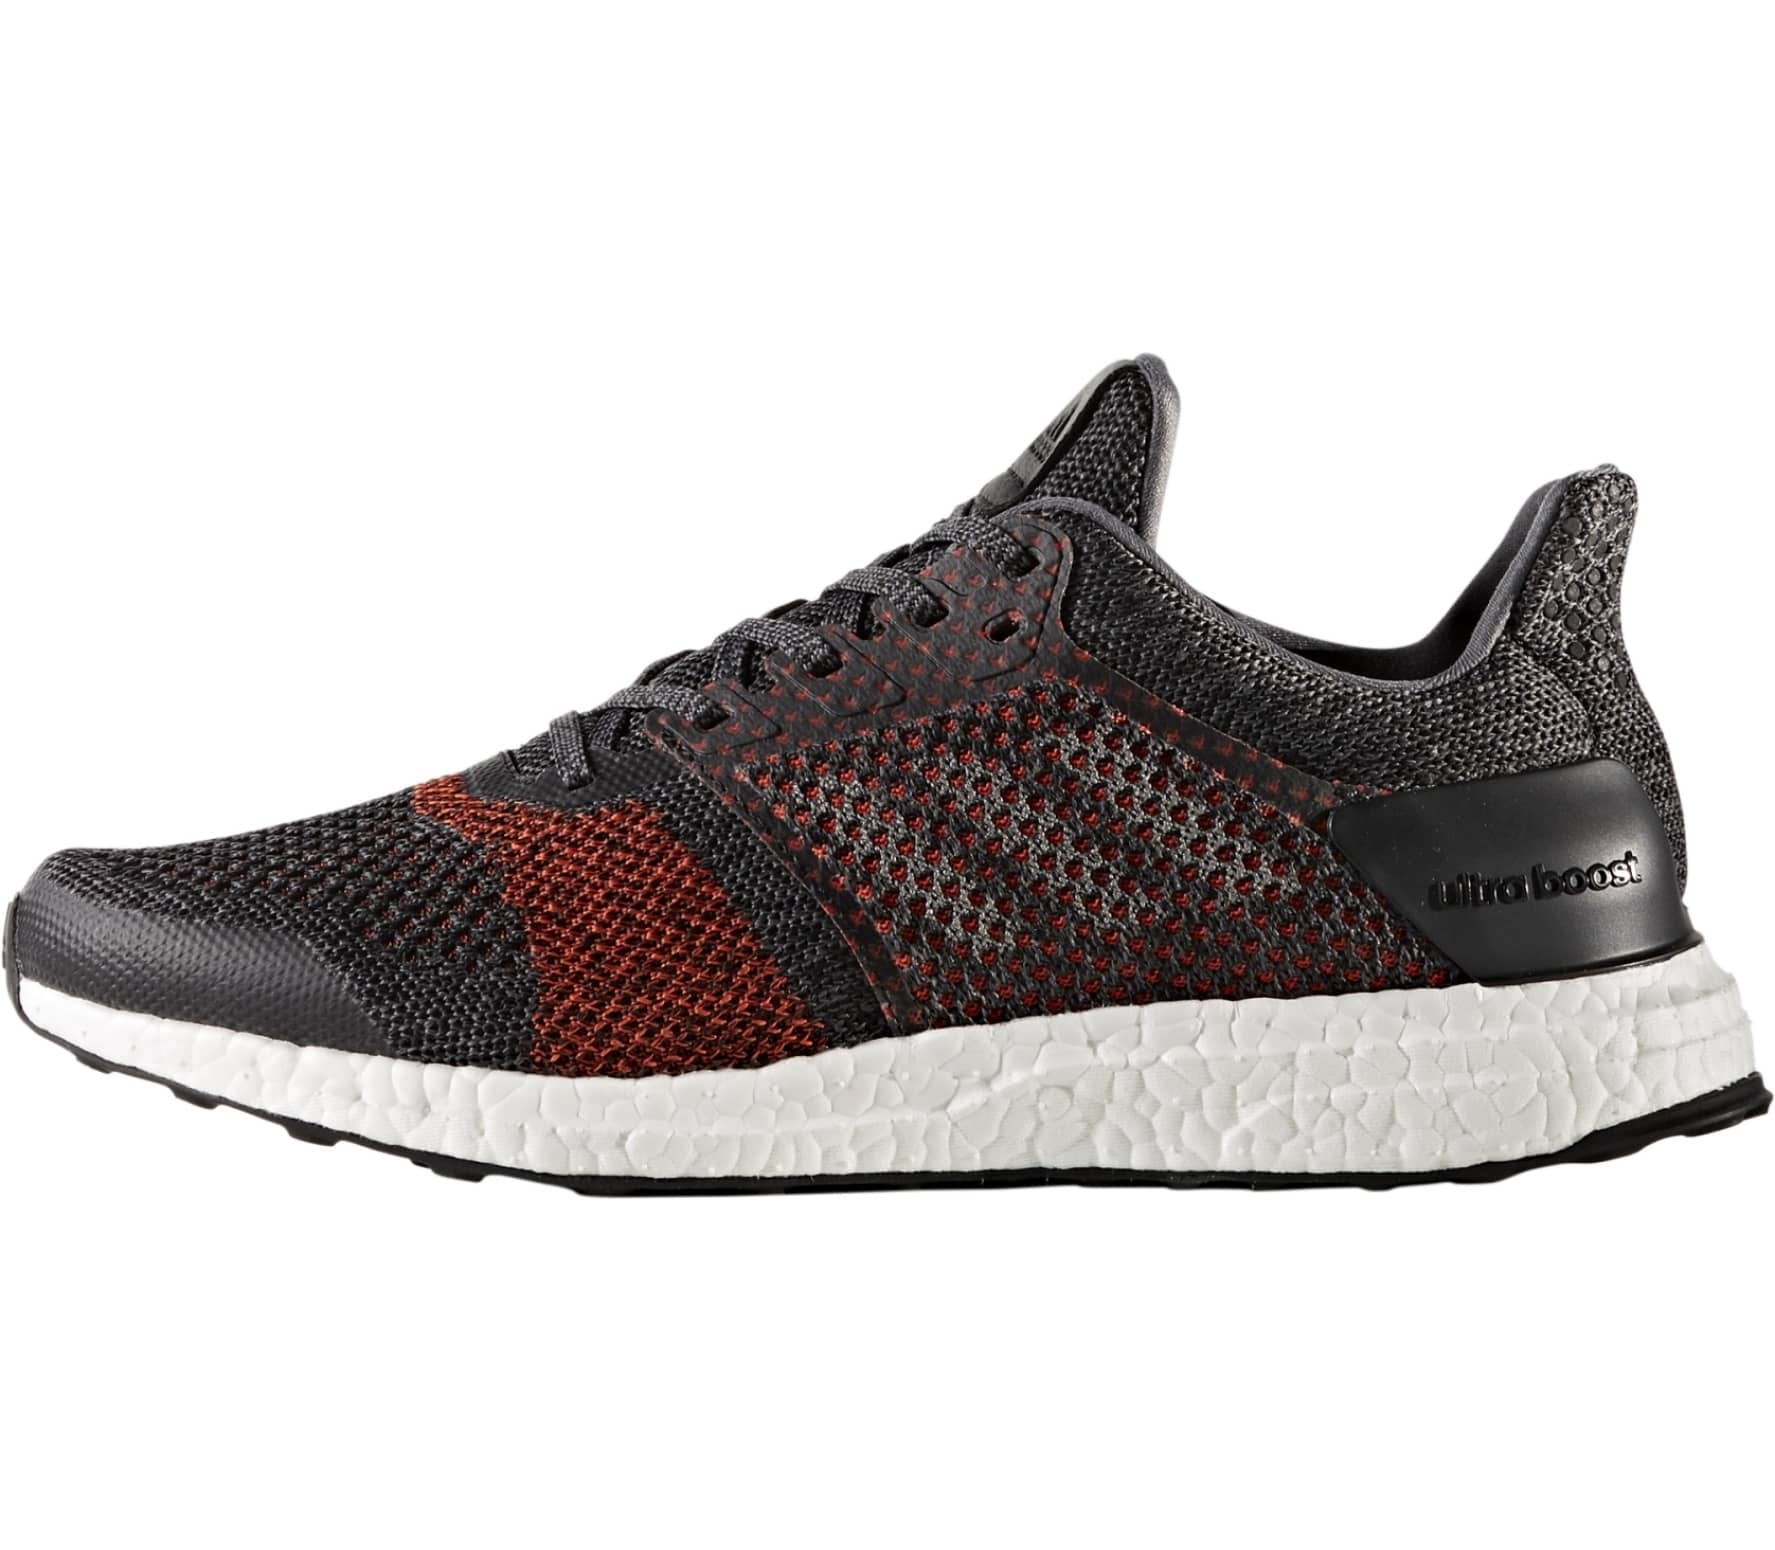 newest d8247 9c144 Adidas - Ultra Boost ST mens running shoes (dark redblack)